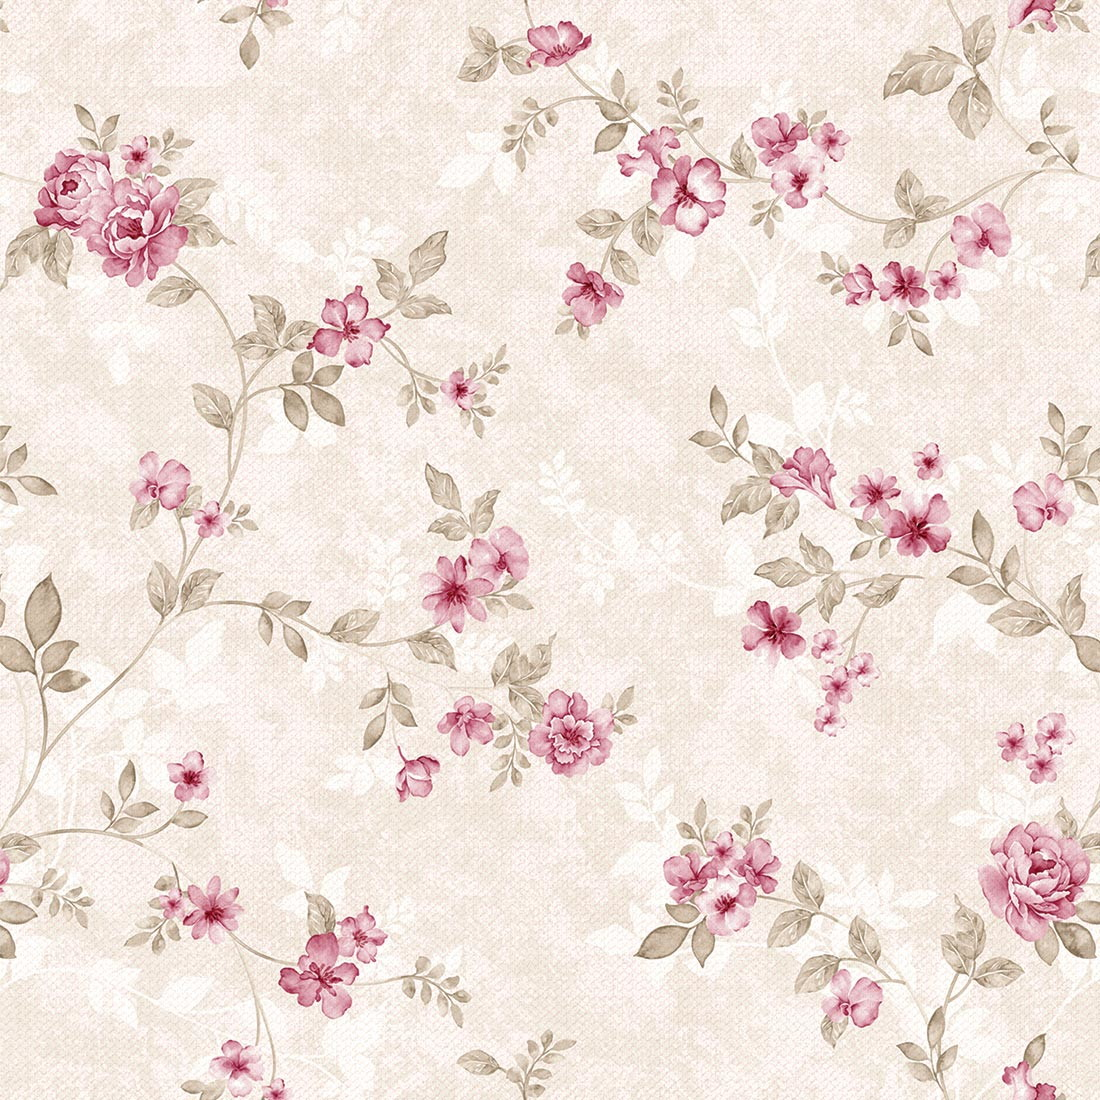 Papel de parede floral rosa delicado no elo7 jmi decor - Papel de pared para bebes ...